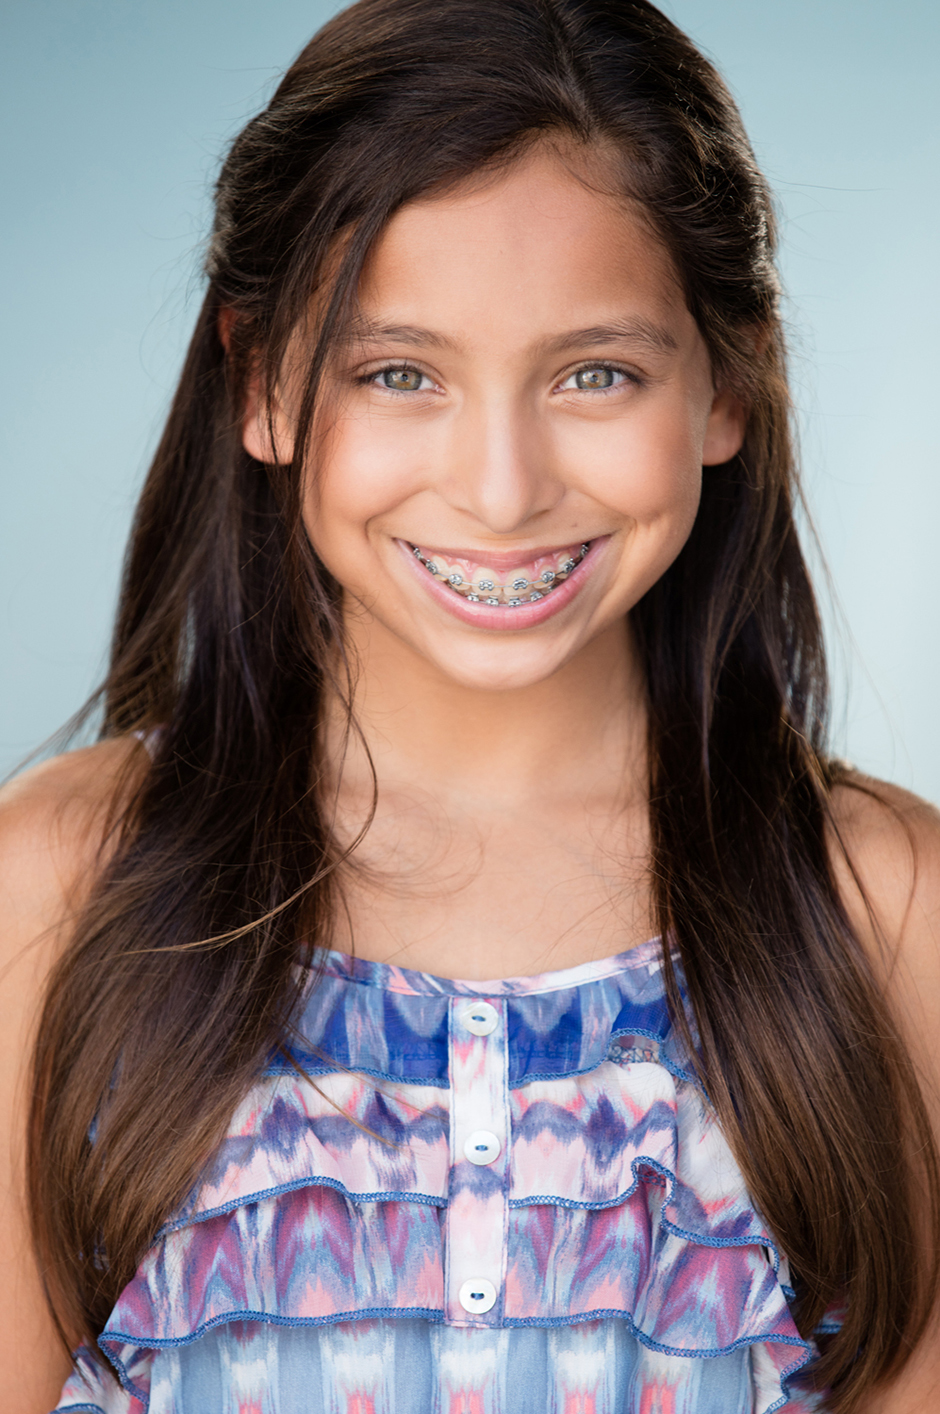 Headshot Photography for Kids